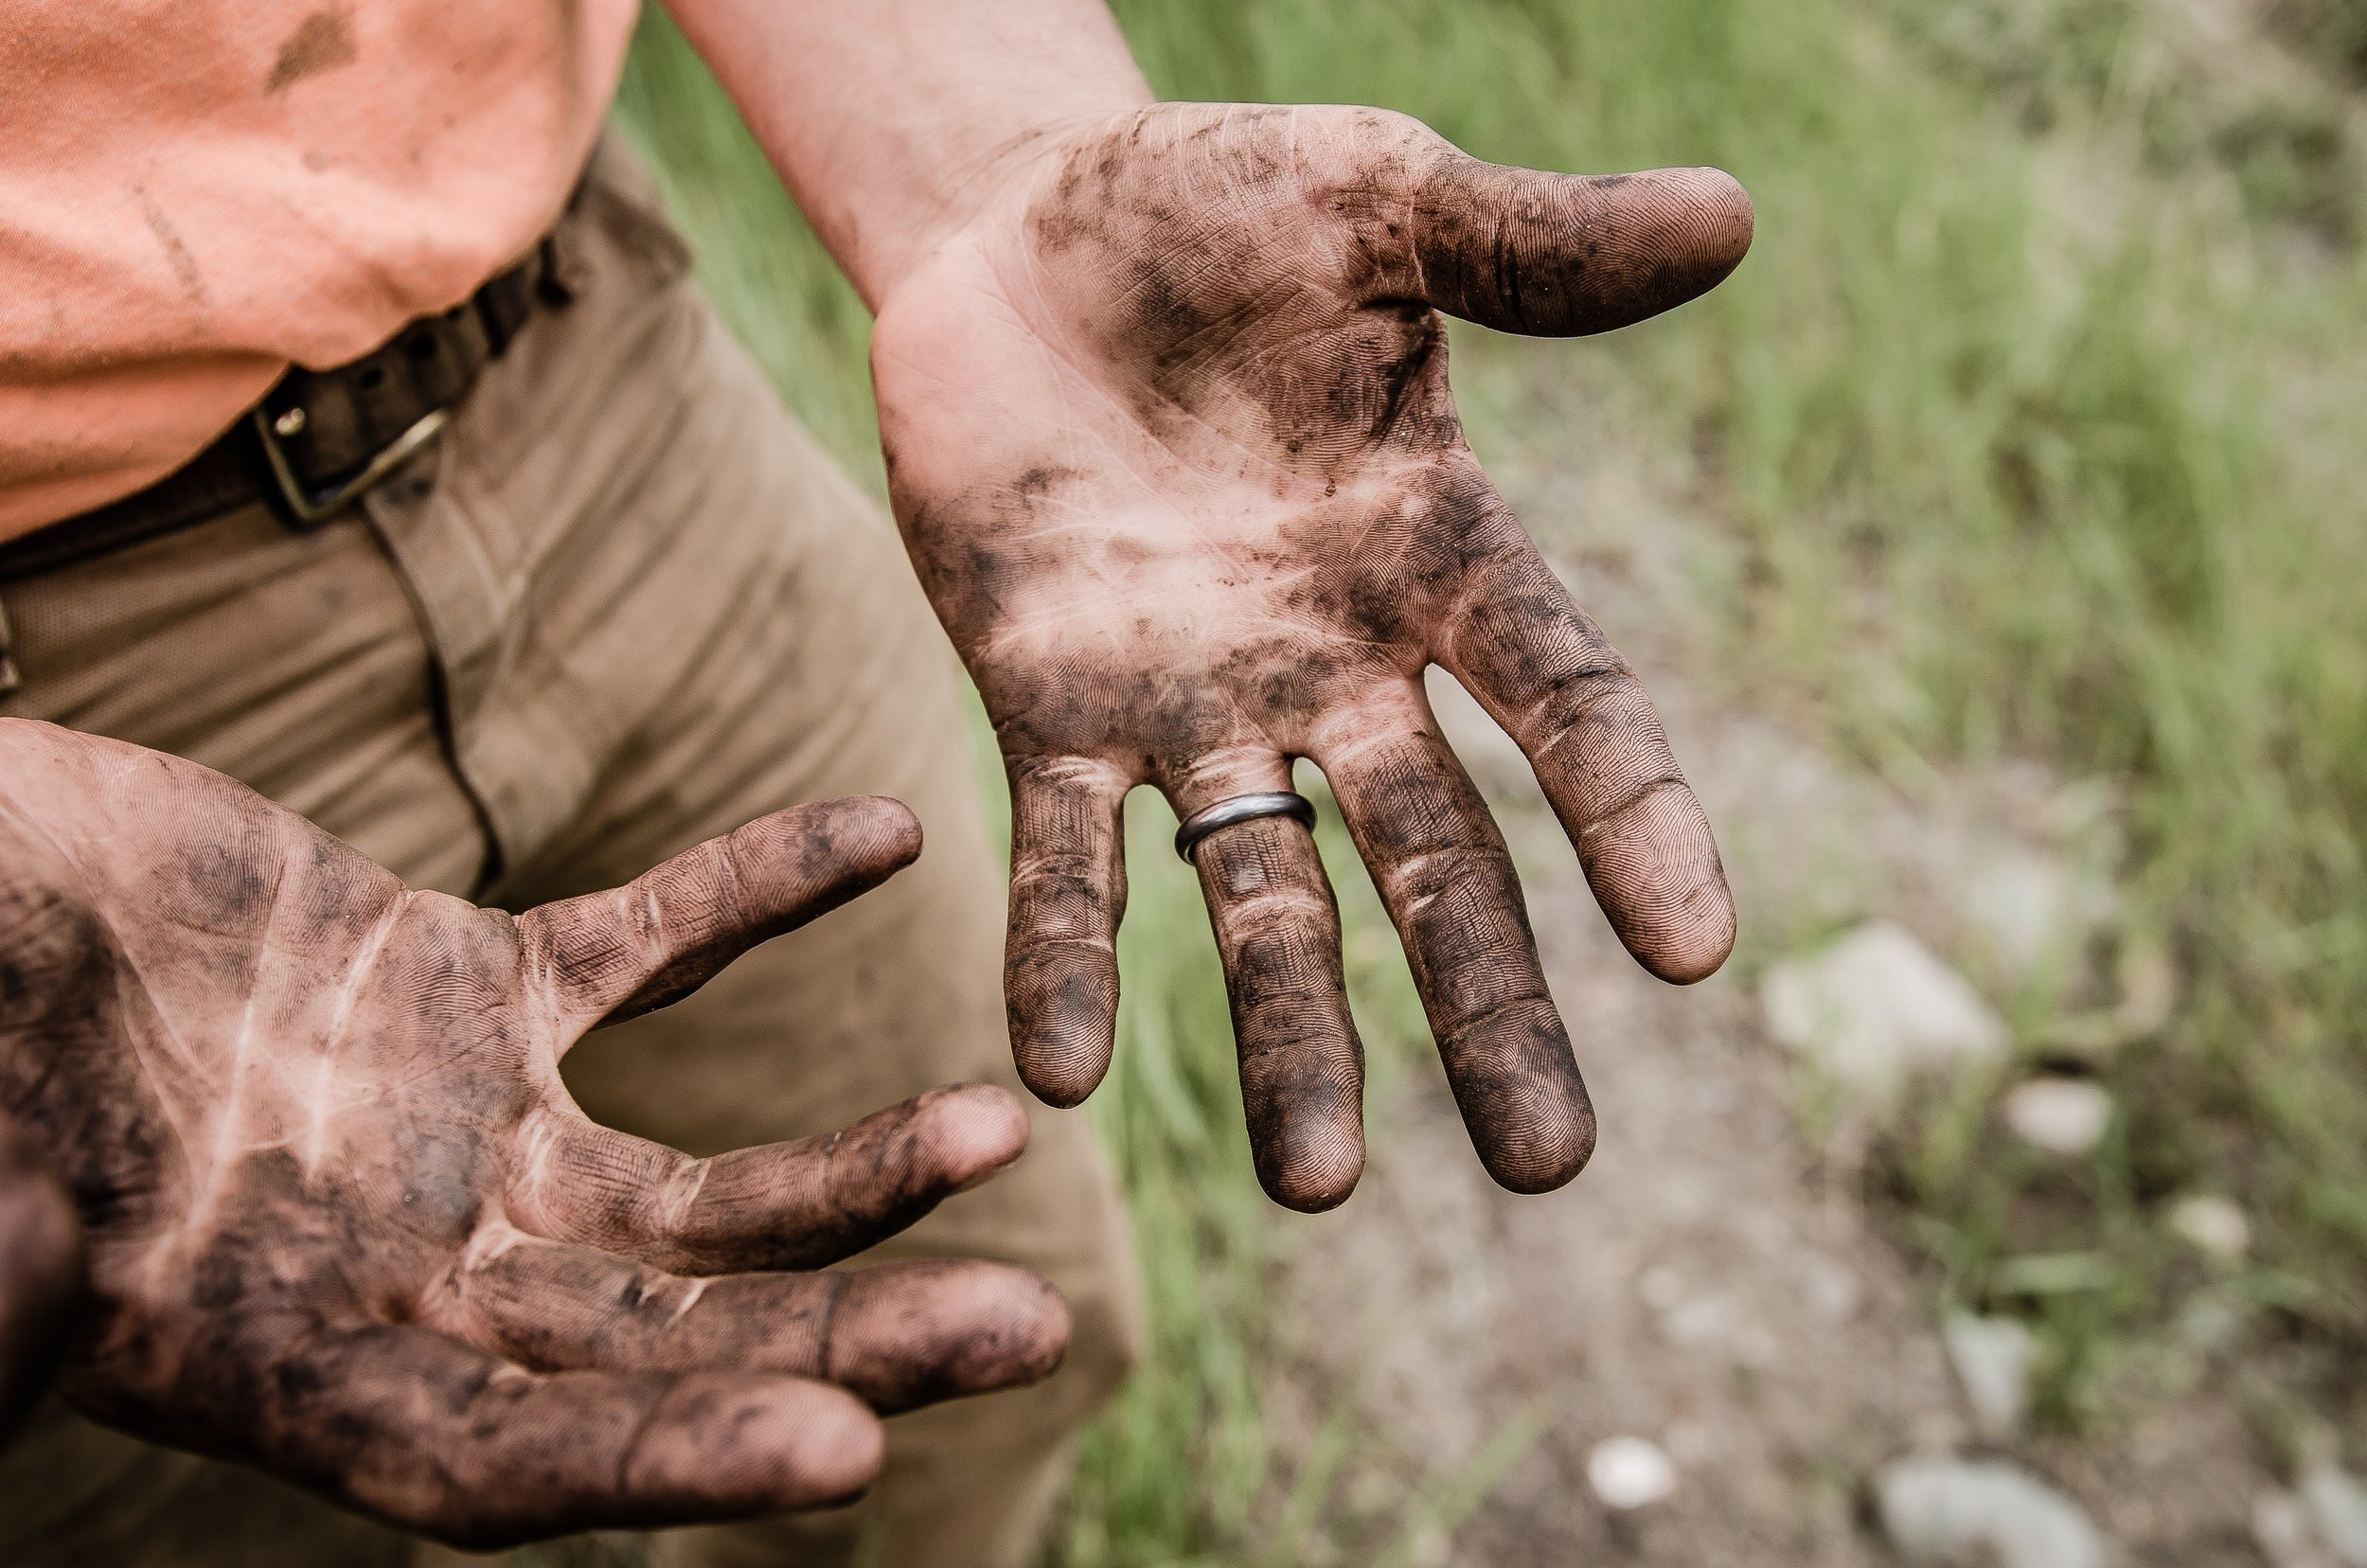 humble-hands-with-mud.jpg